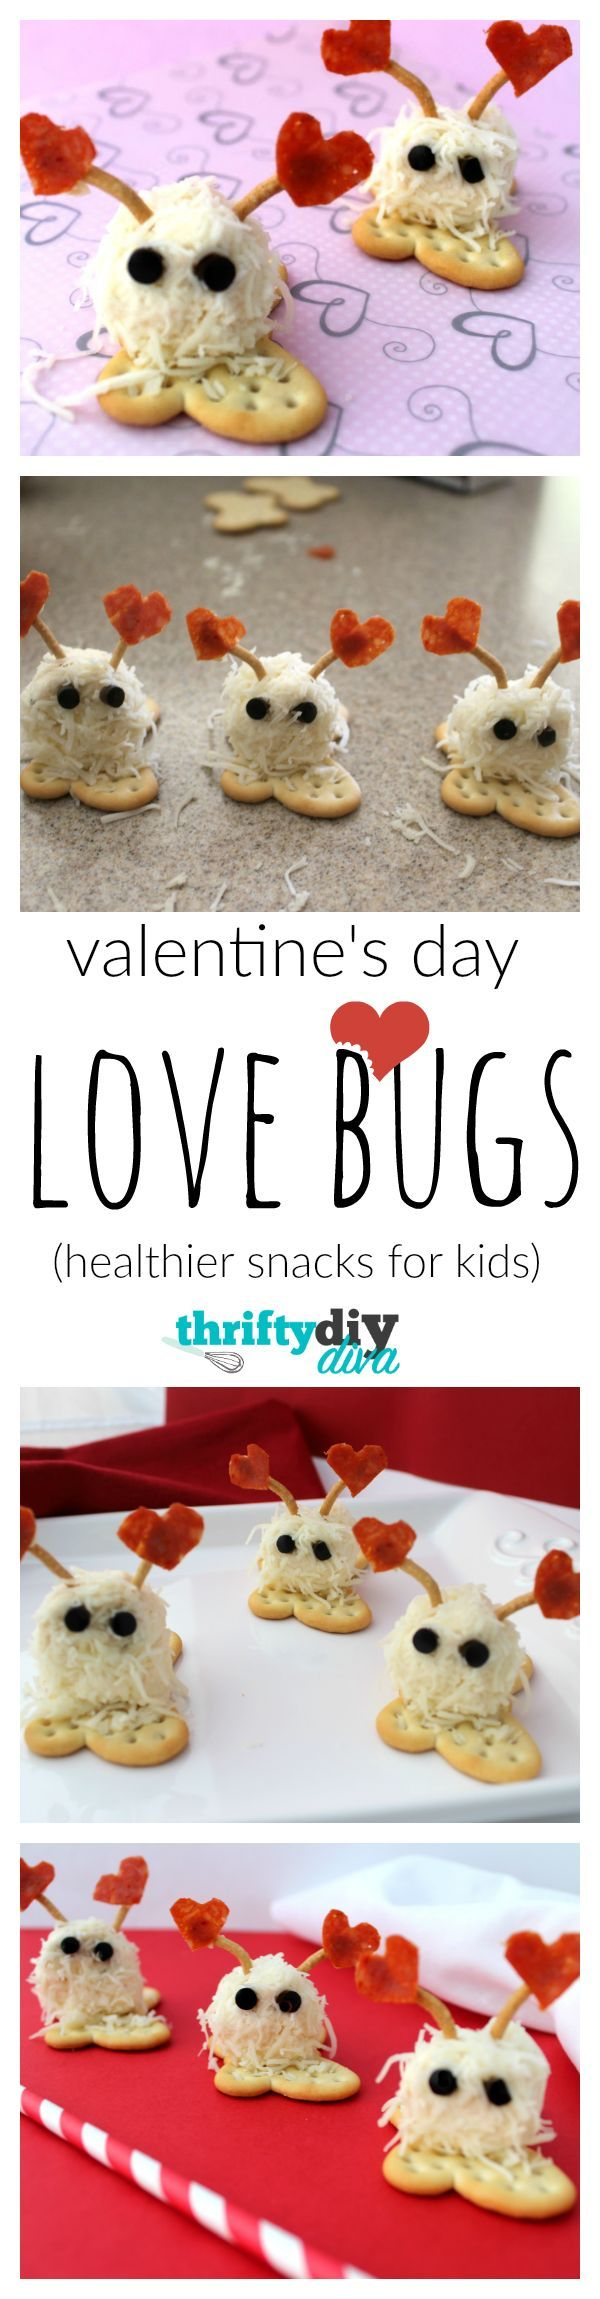 """We had such a fun time making these little Valentine's Day Mini Cheese Ball Love Bugs Snacks and I hope your kids enjoy them as well! These Mini Cheese Ball Love Bugs would be perfect for your kids Valentine's Day class party, and hey, way better than those sugar loaded chocolates, right? And these are so cute and fun to make, you'll have your kids coming up with other food """"creatures"""" to make, too…"""